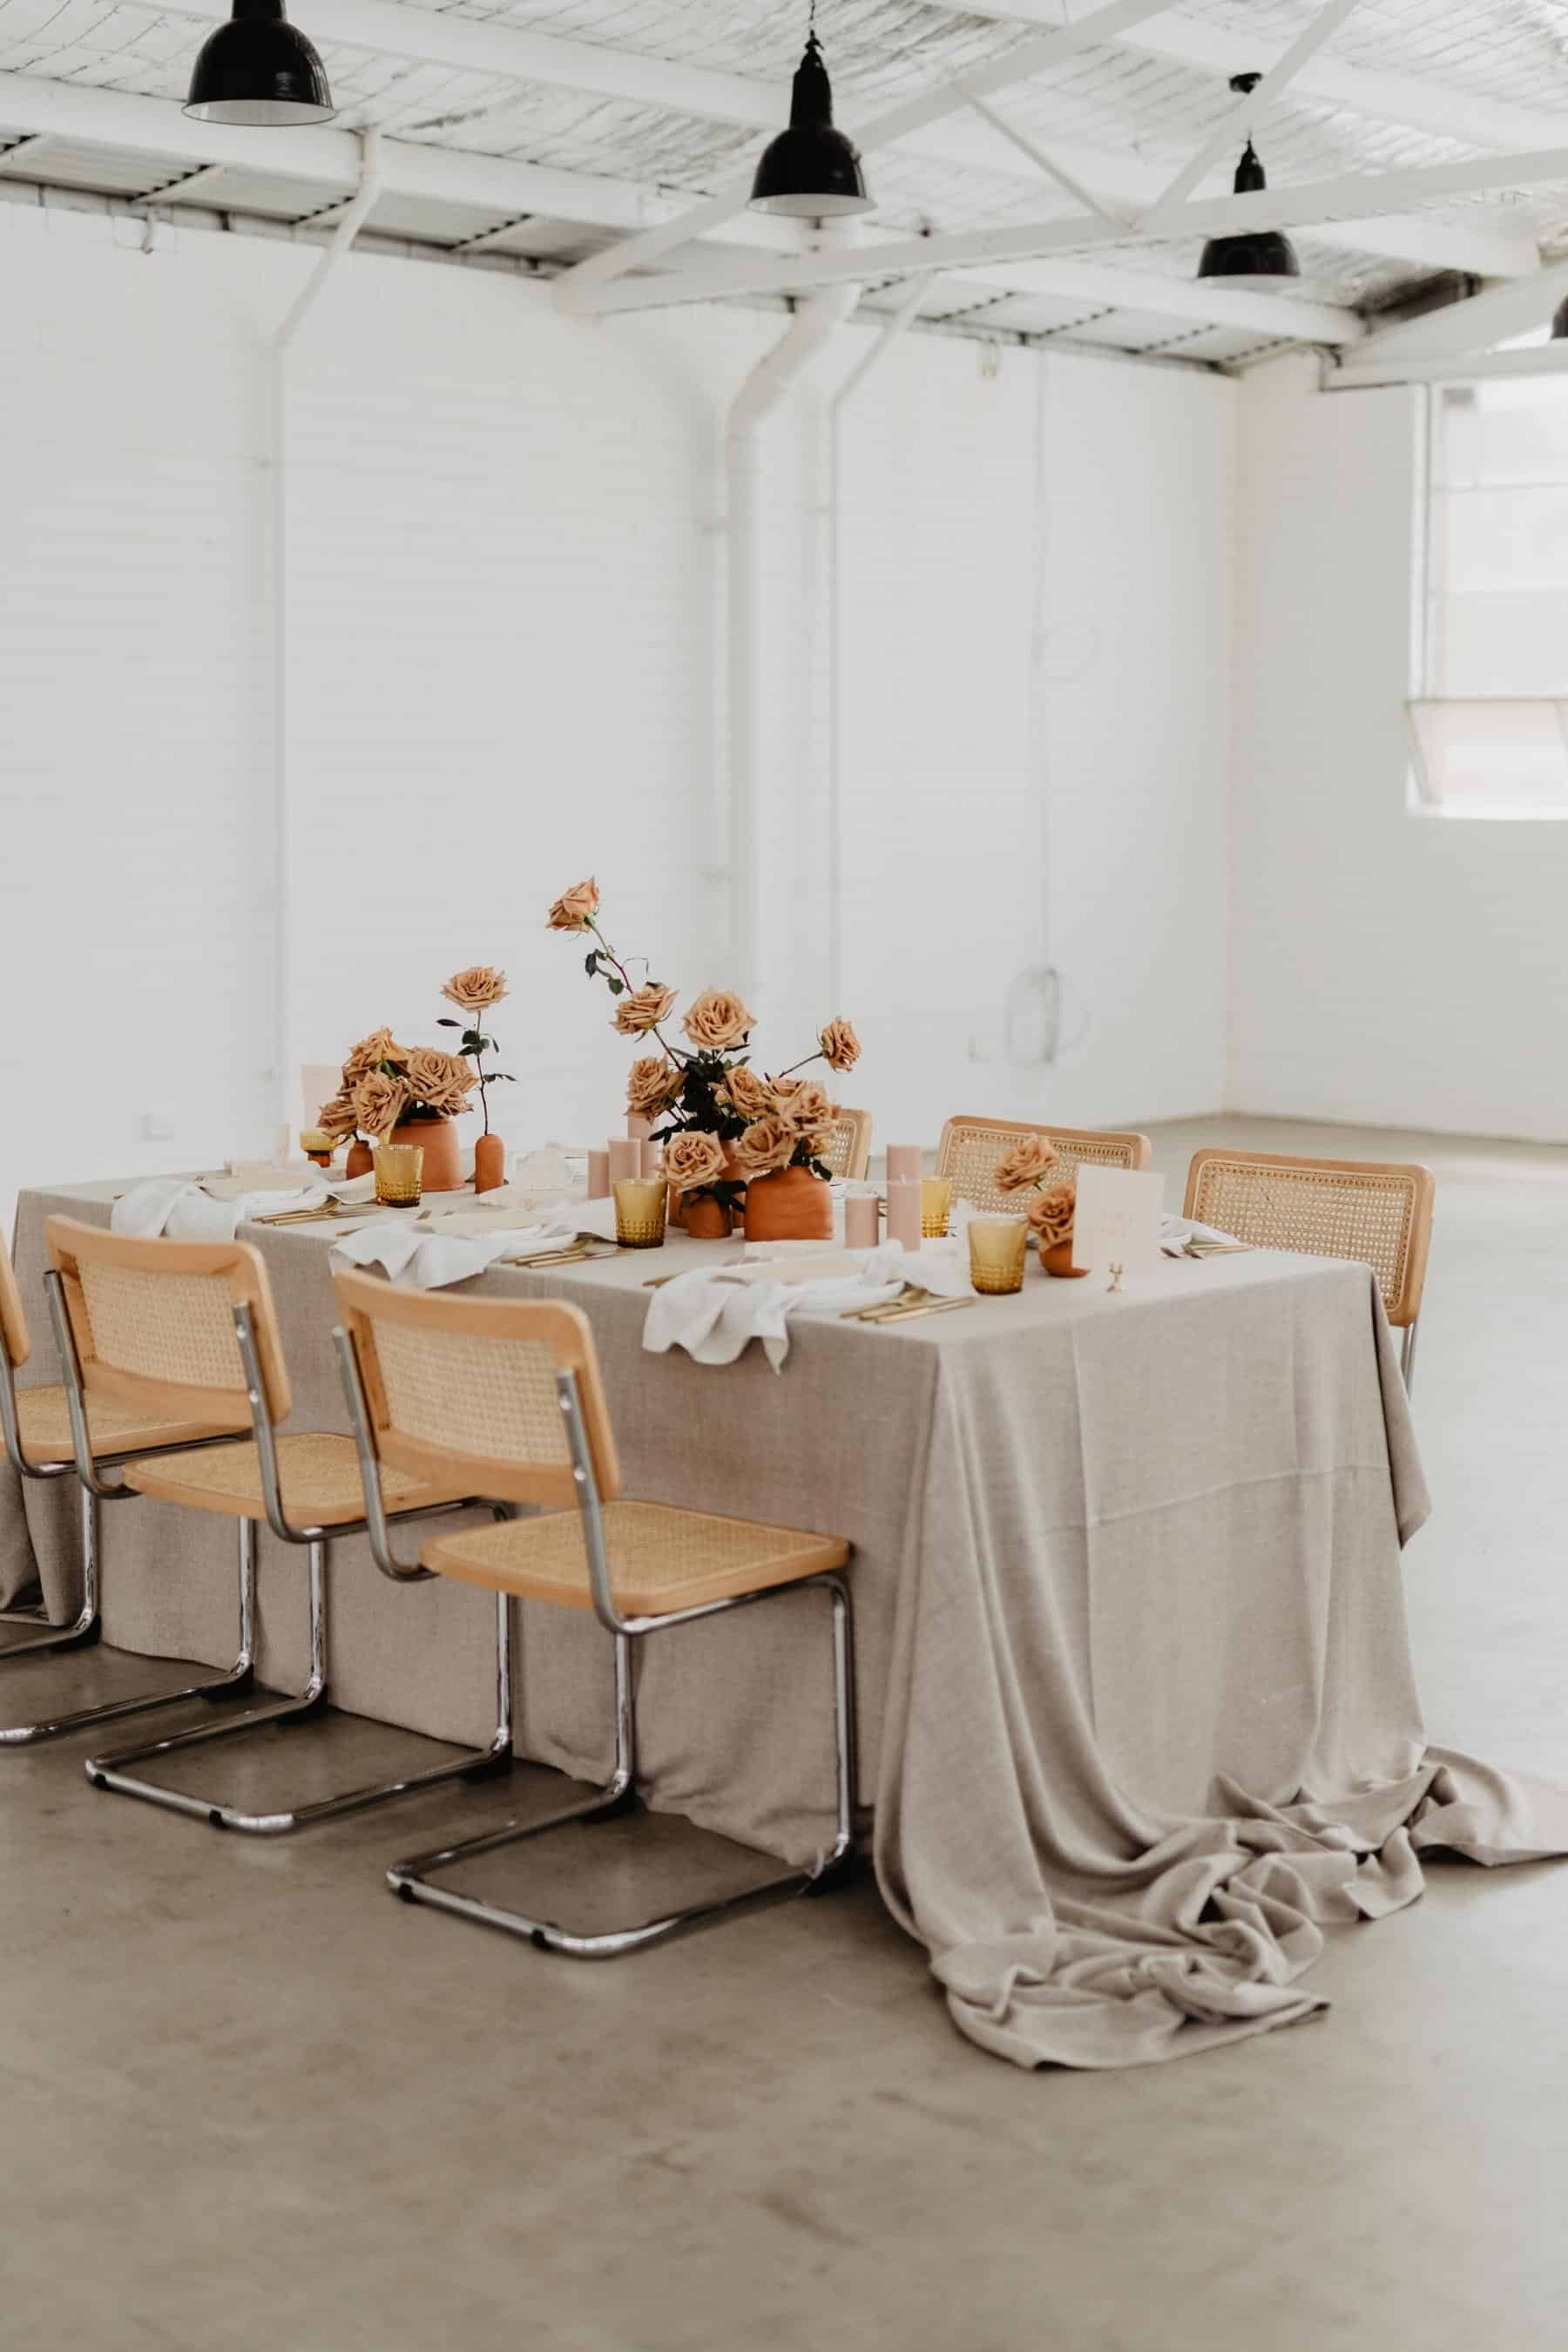 autumn wedding inspiration in a light-filled warehouse